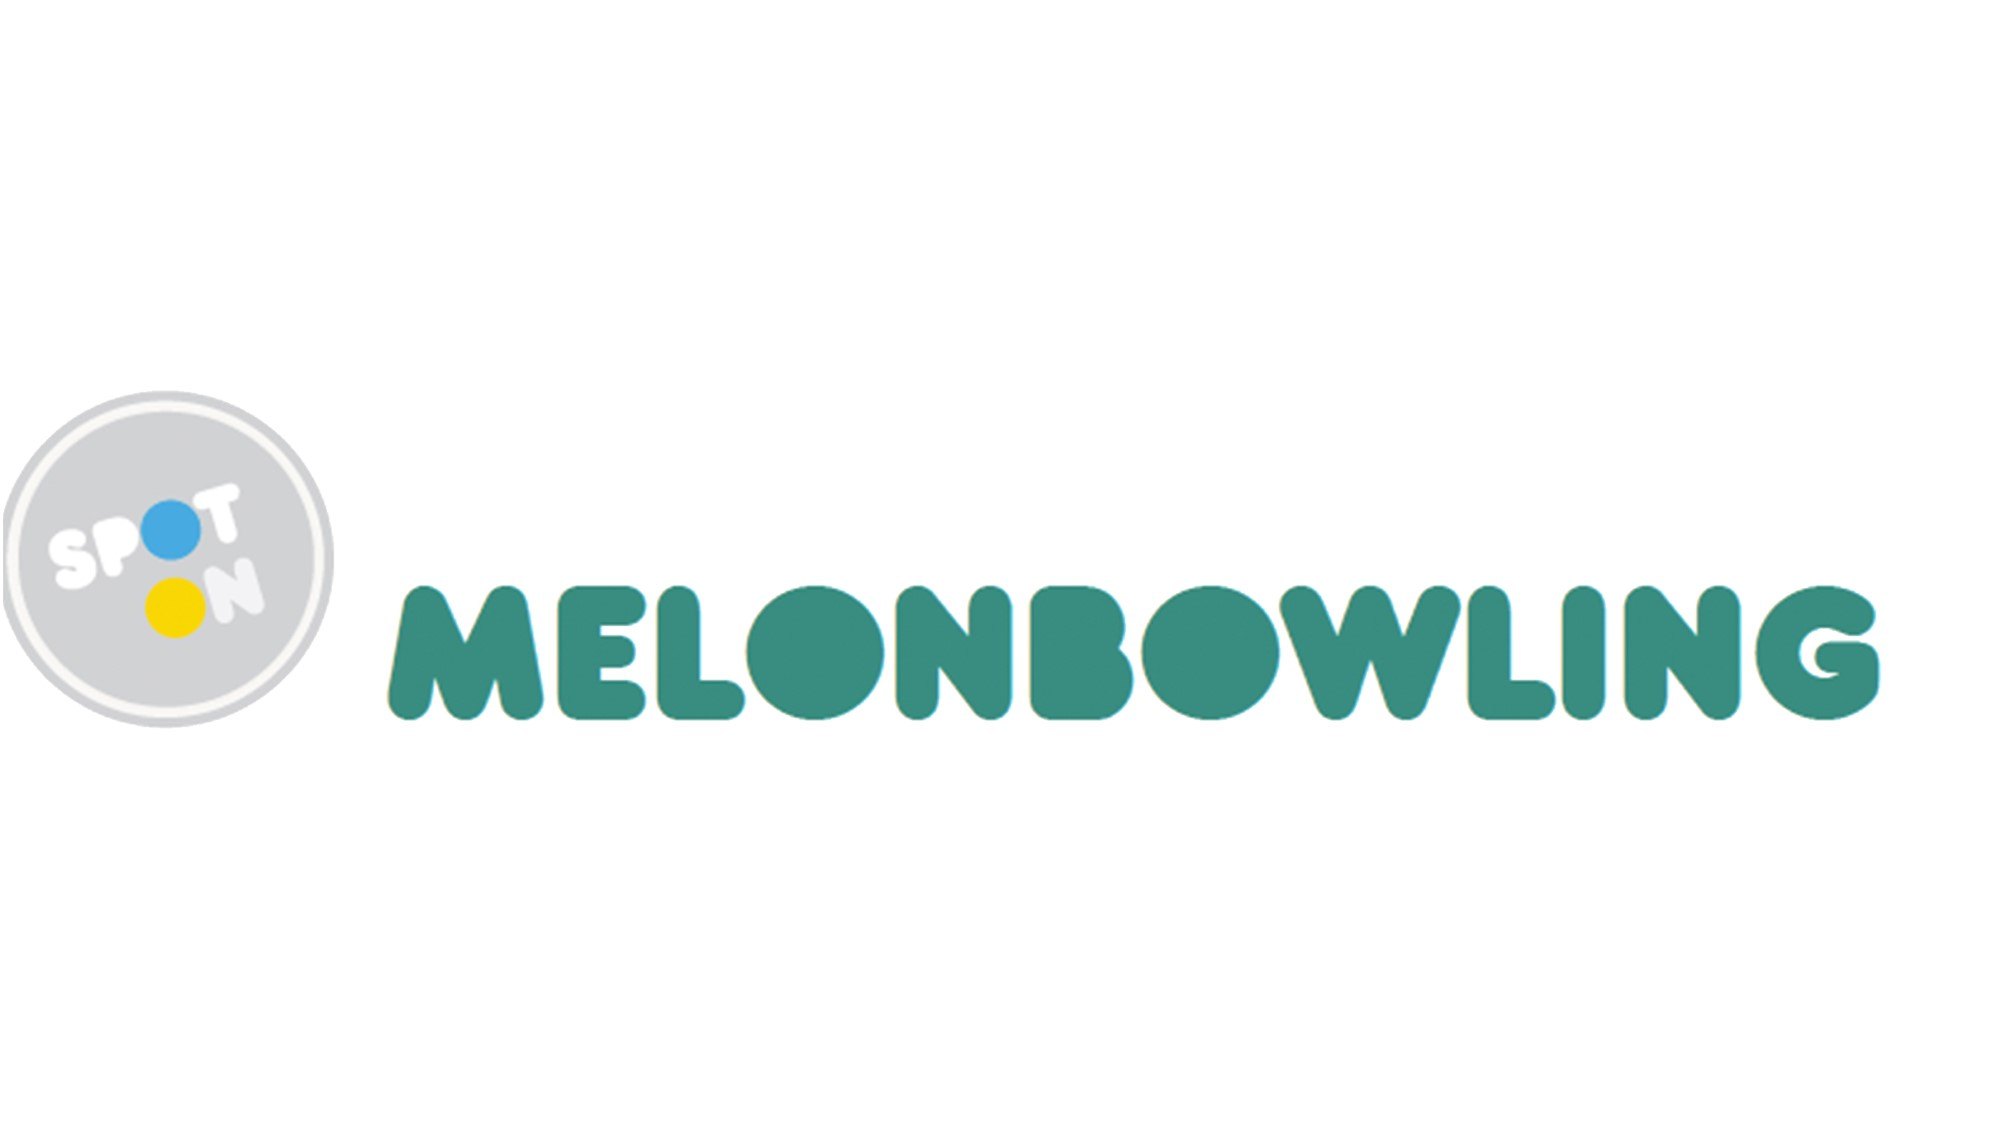 Melonbowling